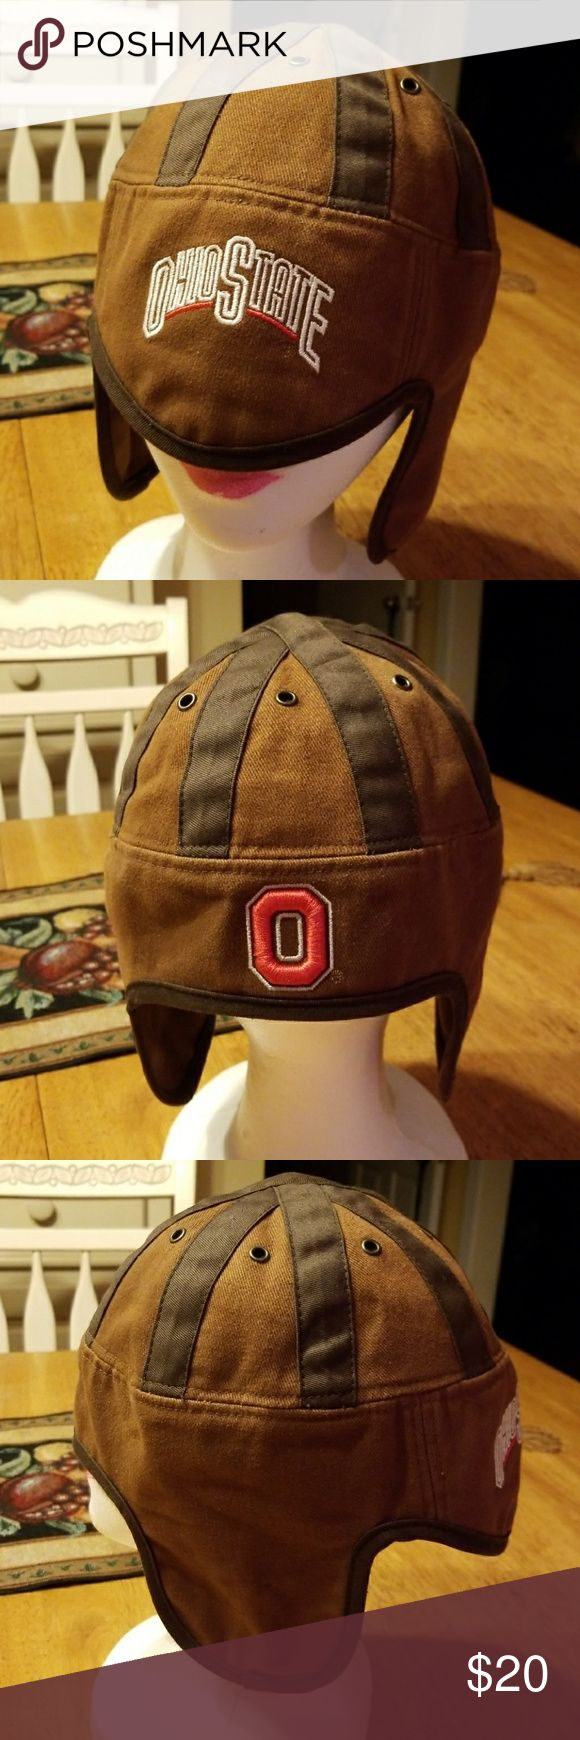 Ohio State Buckeyes Throwback Cloth Helmet Hat Cap This Piece has been displayed and not worn NWOT   Collegiate Licensed Ohio State Buckeyes Cloth Retro Throwback Football Helmet Hat Cap   Show Your Buckeye Pride !!!  Be Sure To Check Out The Rest of My Listings For Additional College and NFL Items for men women and kids. Baltimore Ravens Washington REDSKINS University of Maryland   ✔ BUNDLE UP FOR SAVINGS  ✔ Ohio State Accessories Hats